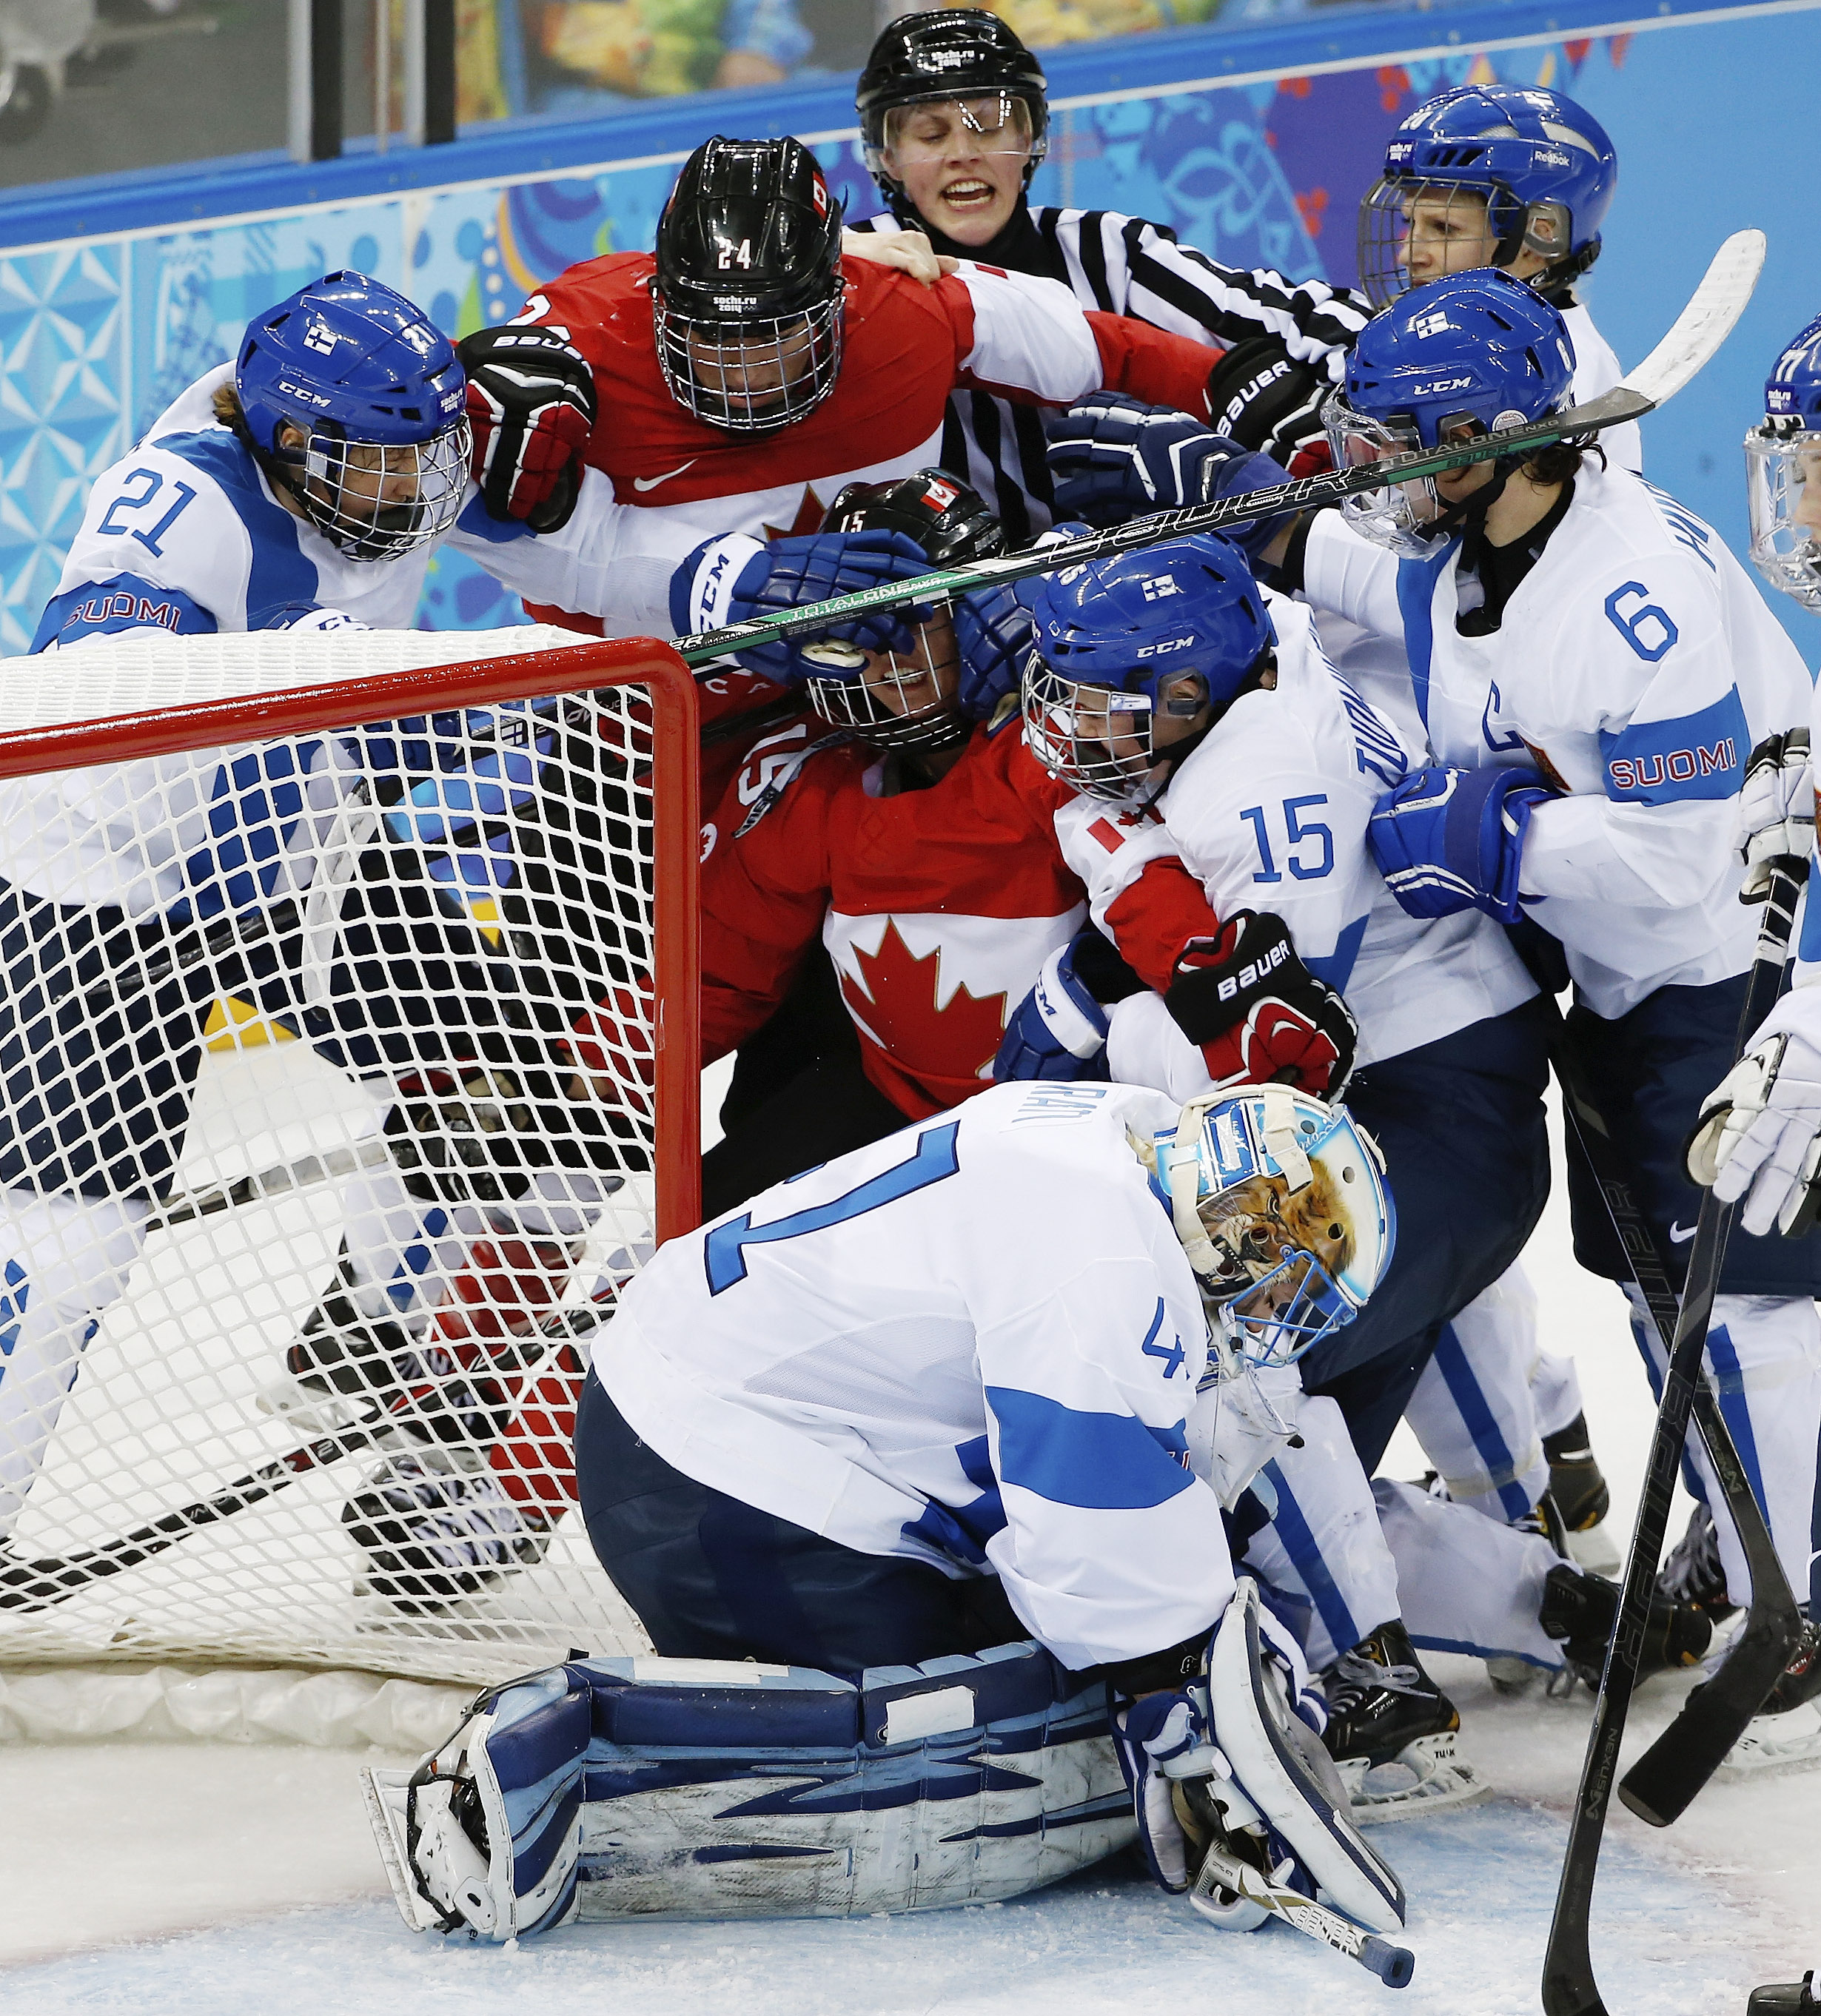 The referee breaks up a scuffle between Team Canada and Team Finland that resulted in two penalties against Canada during the second period of the 2014 Winter Olympics women's ice hockey game at Shayba Arena, Monday, Feb. 10, 2014, in Sochi, Russia. (AP Photo/Petr David Josek)